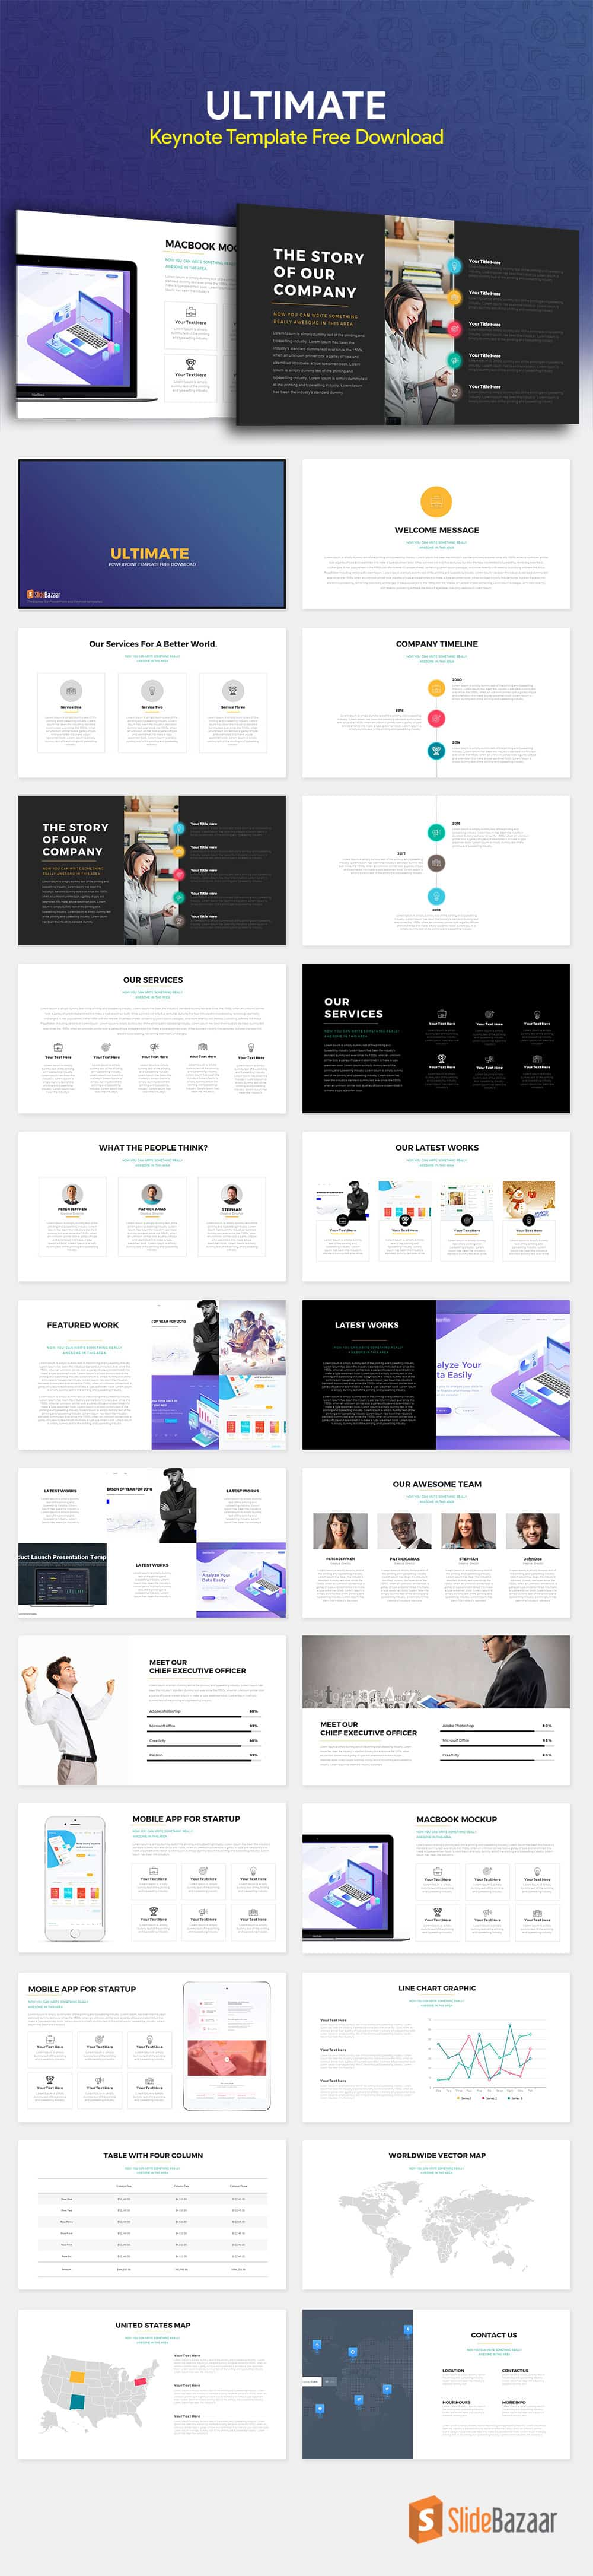 Ultimate-Keynote-Template-Free-Download